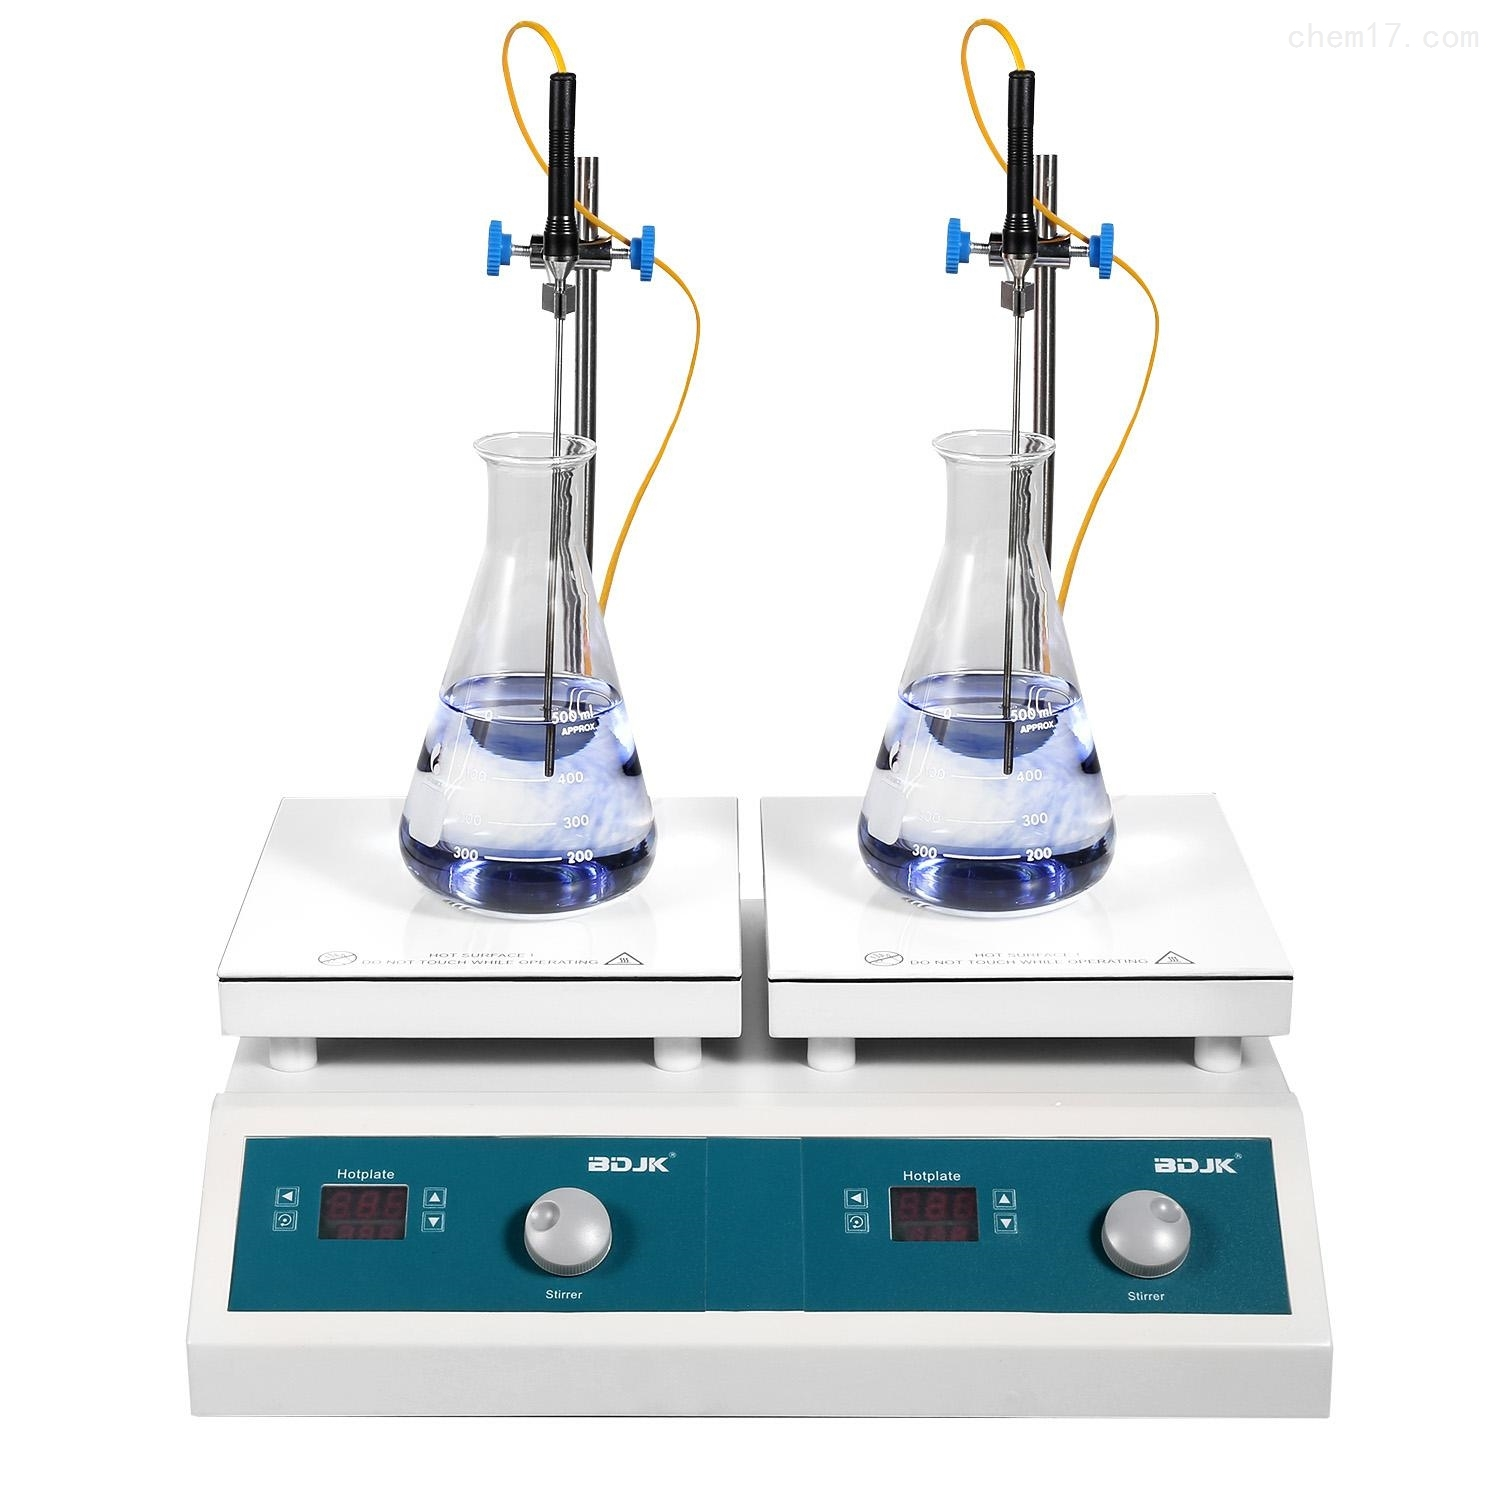 HMS-901D 2 combined 2 combined heating magnetic stirrer